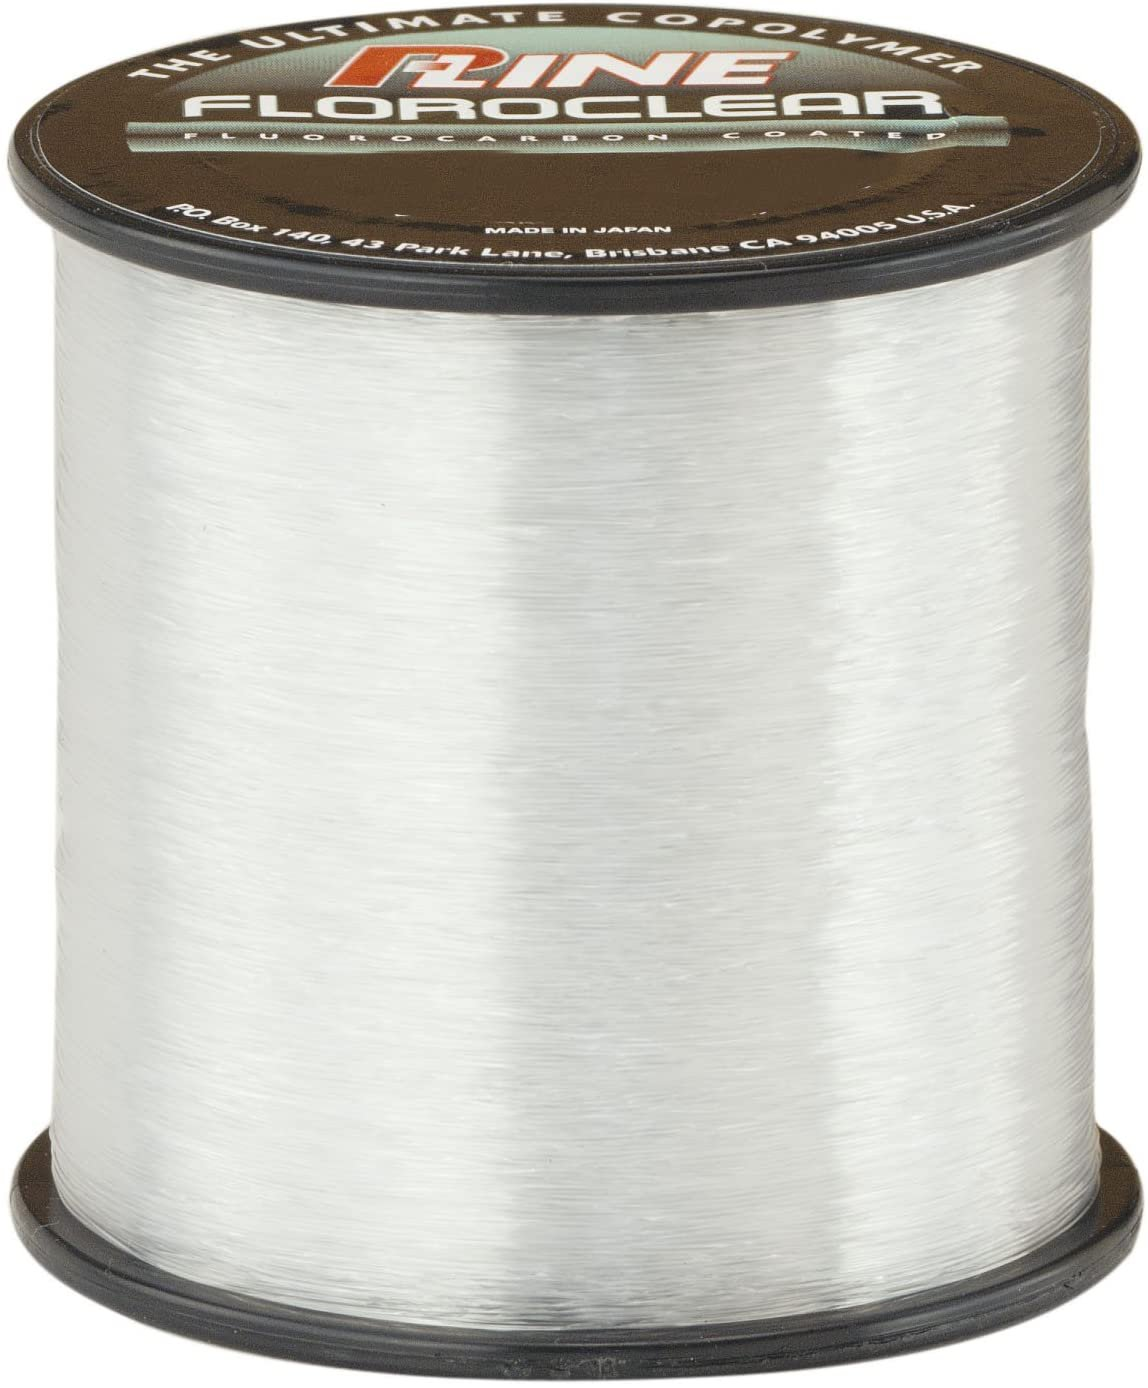 P-Line Floroclear Clear Fishing Line 400-600 YD Spool 4-Pound